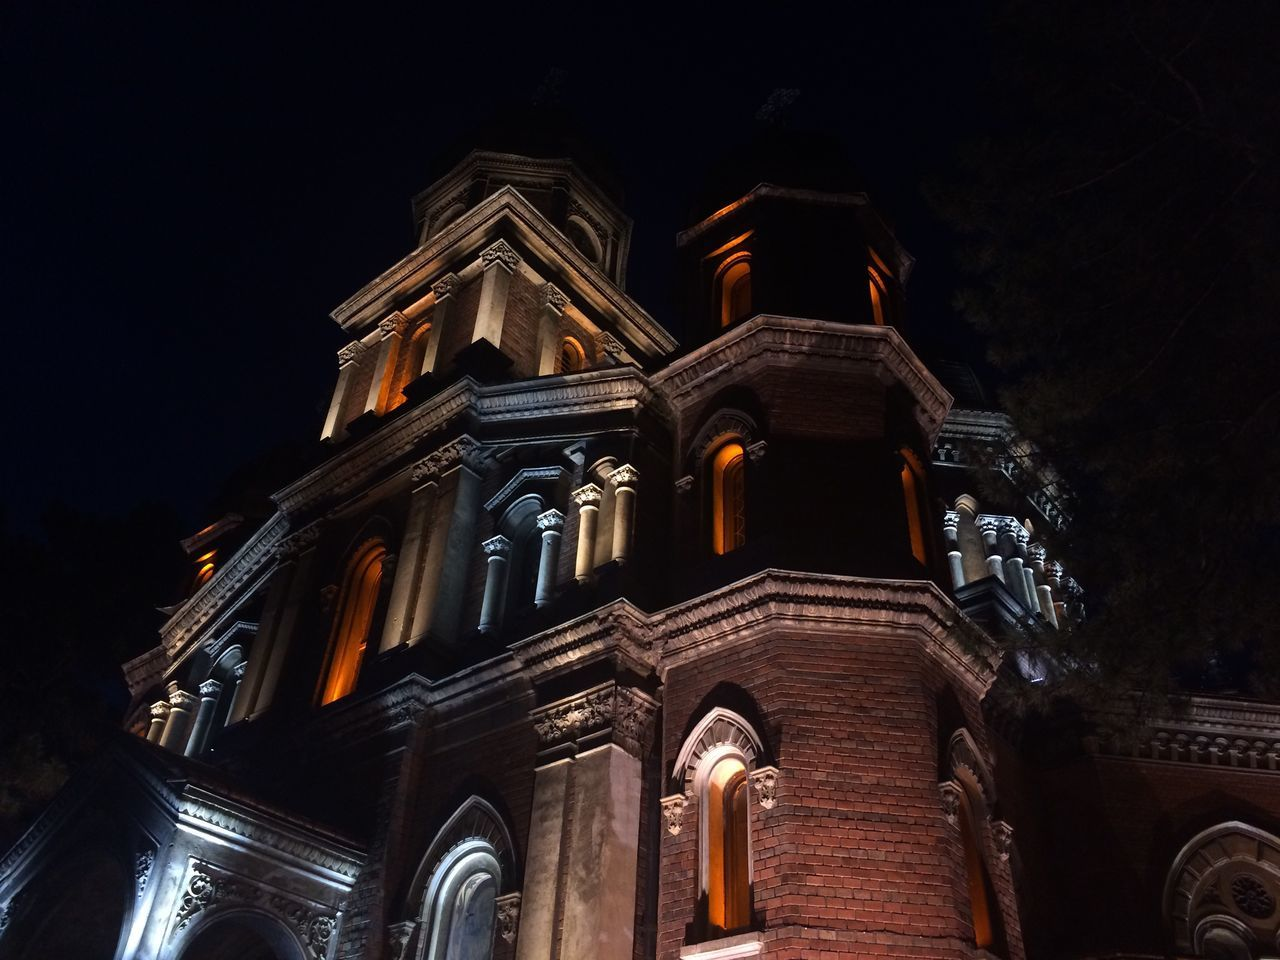 Architecture Religion Place Of Worship Low Angle View Building Exterior Spirituality Built Structure Night History No People Illuminated Outdoors Sky Light And Shadow Church Architecture Church Nightphotography Craiova